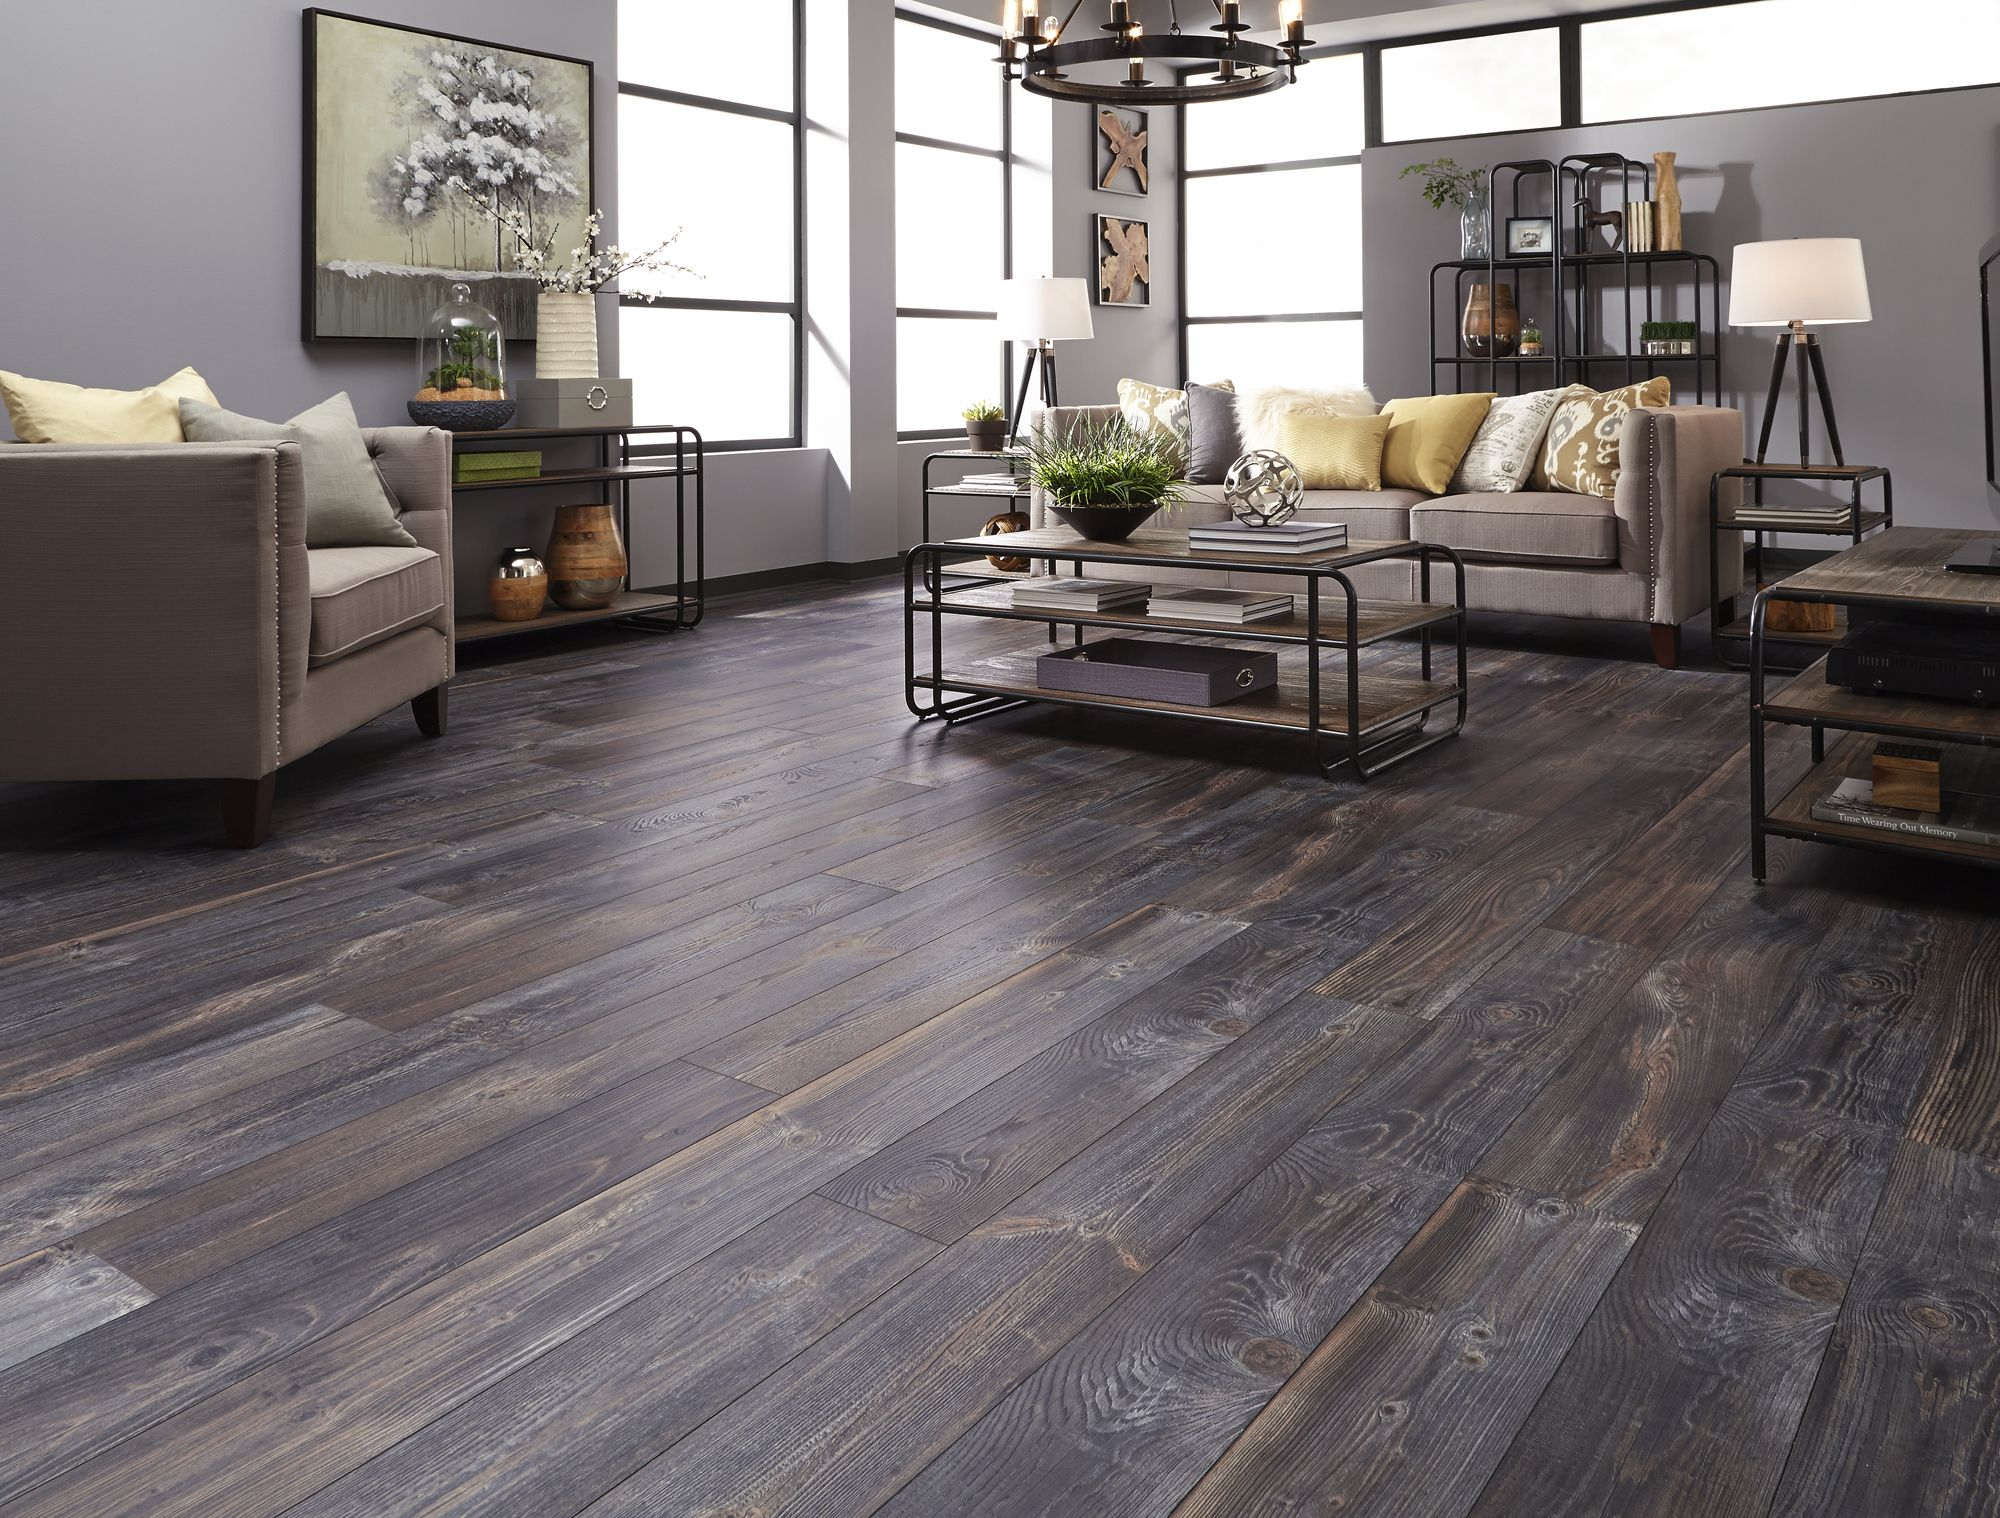 Boardwalk Oak  a NEW Dream Home Laminate featuring a